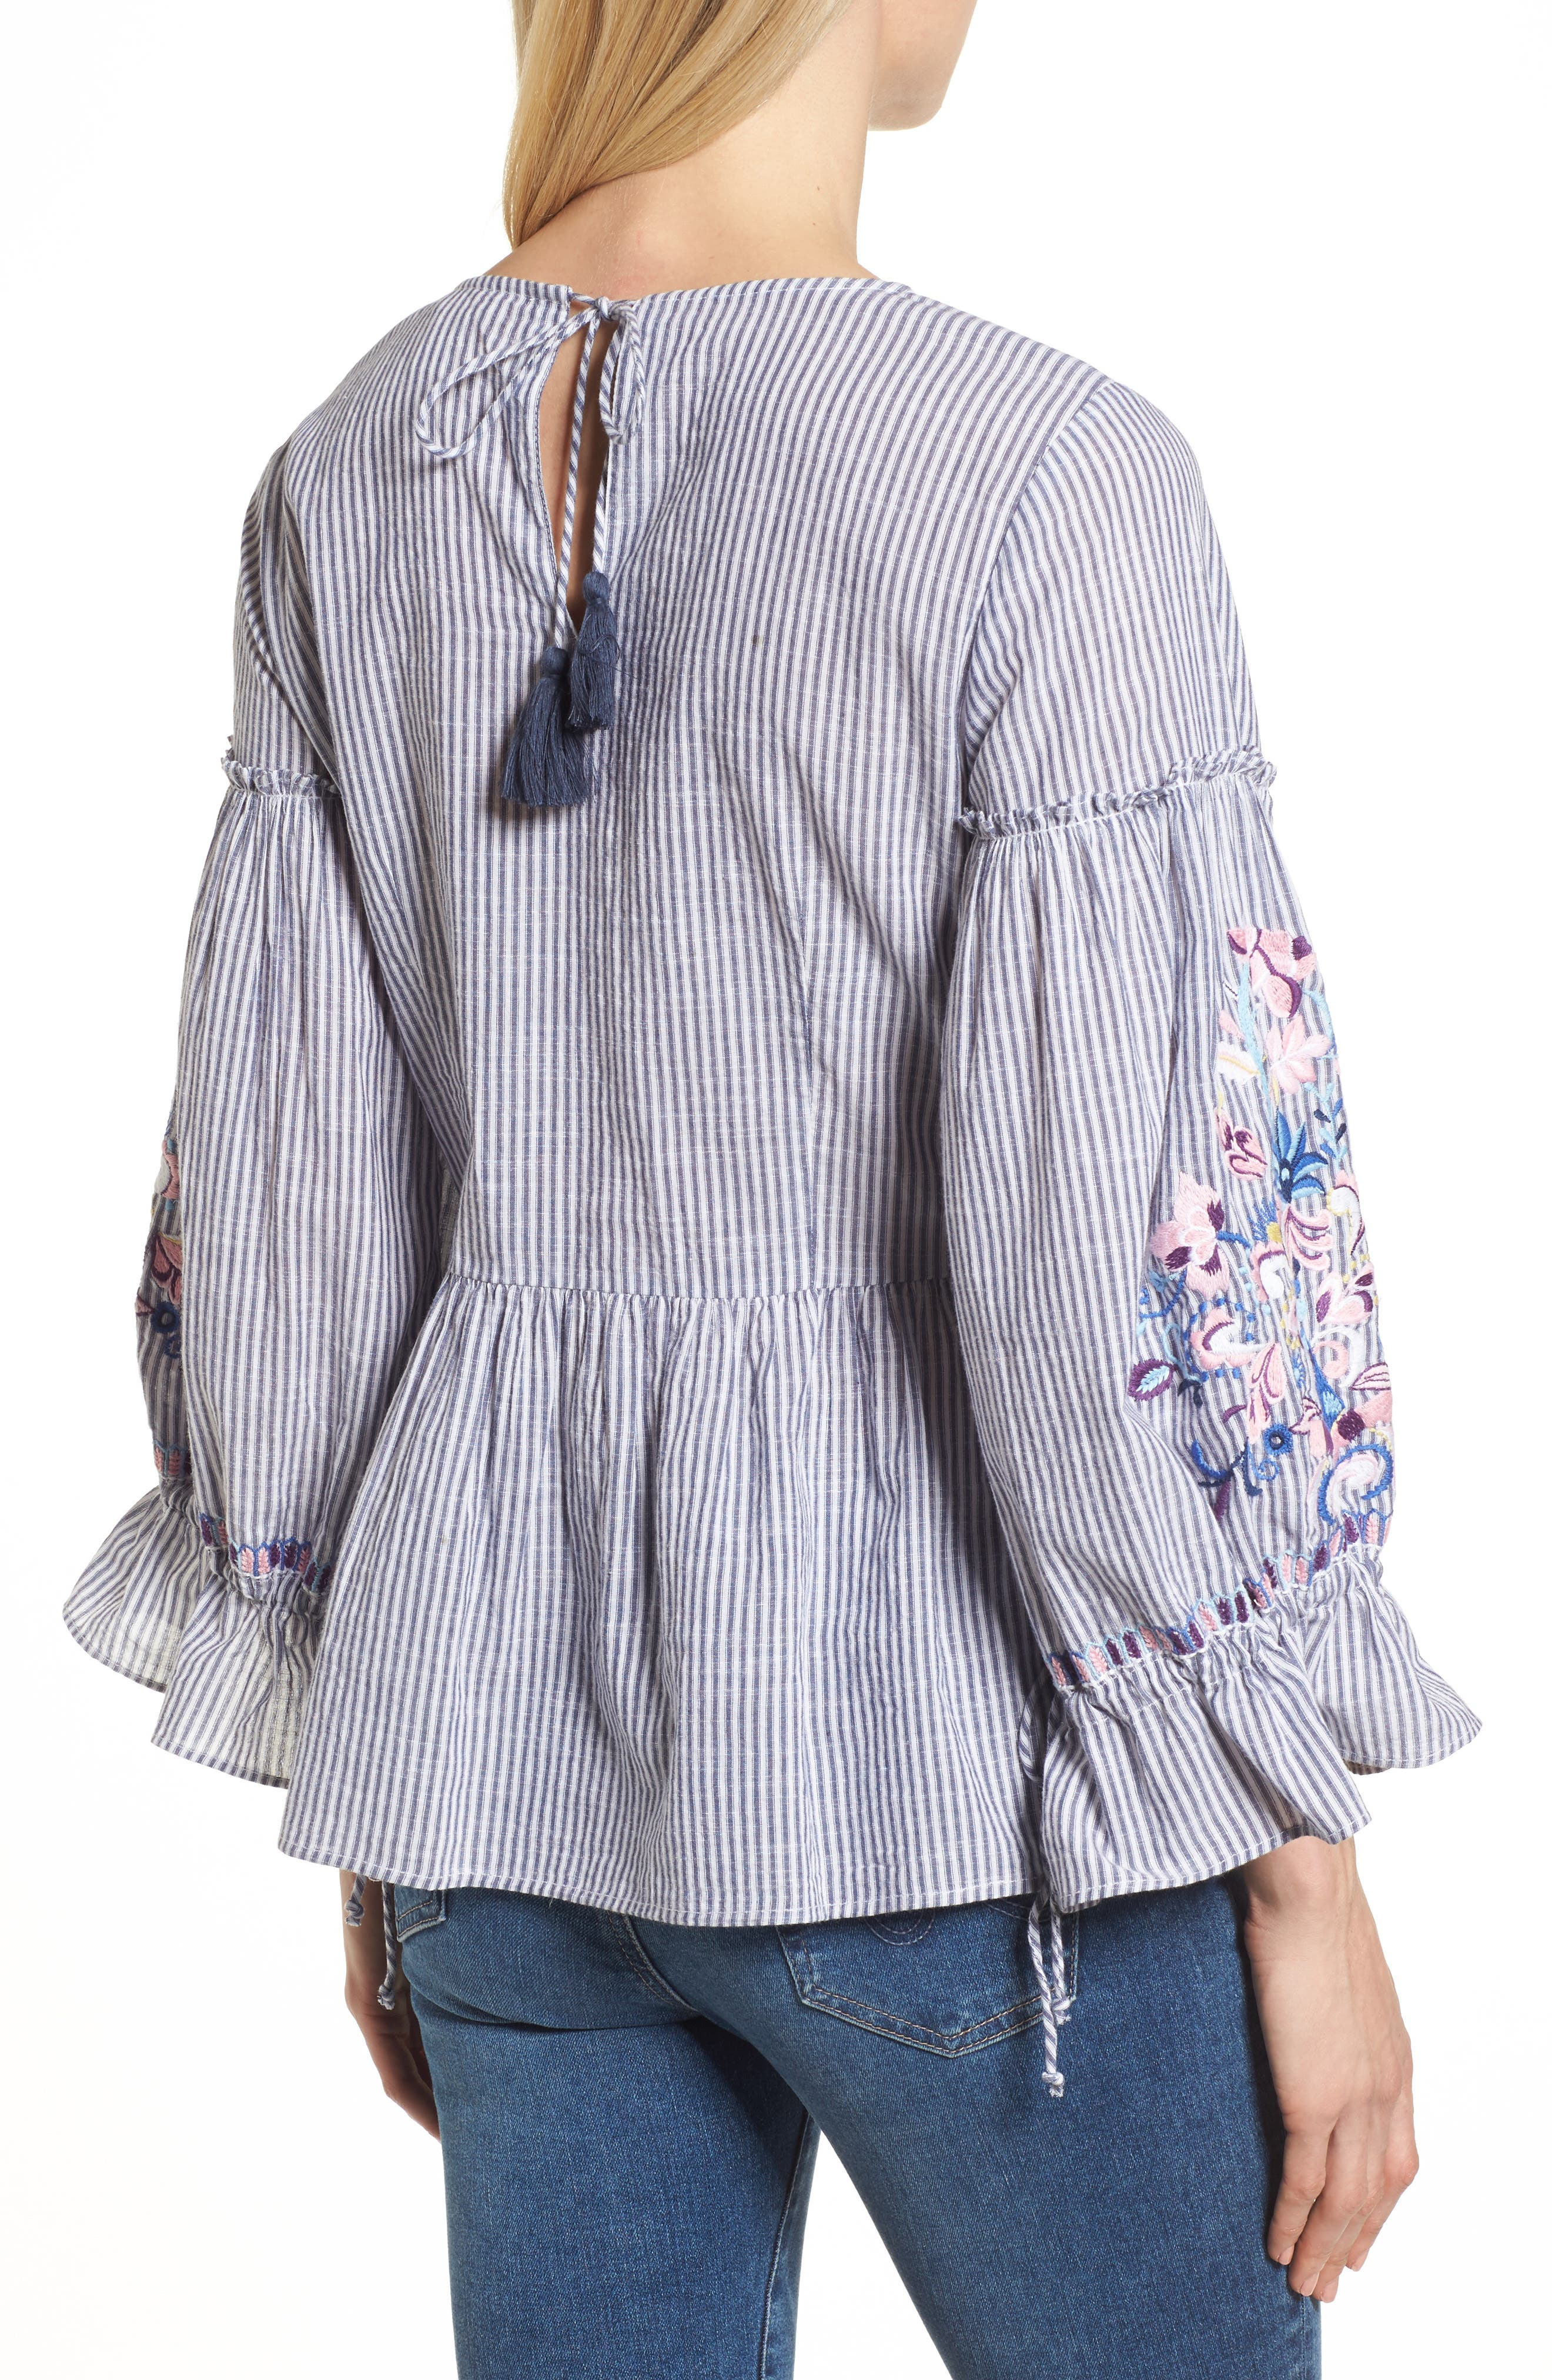 Embroidered Sleeve Top,                             Alternate thumbnail 2, color,                             Blue-White